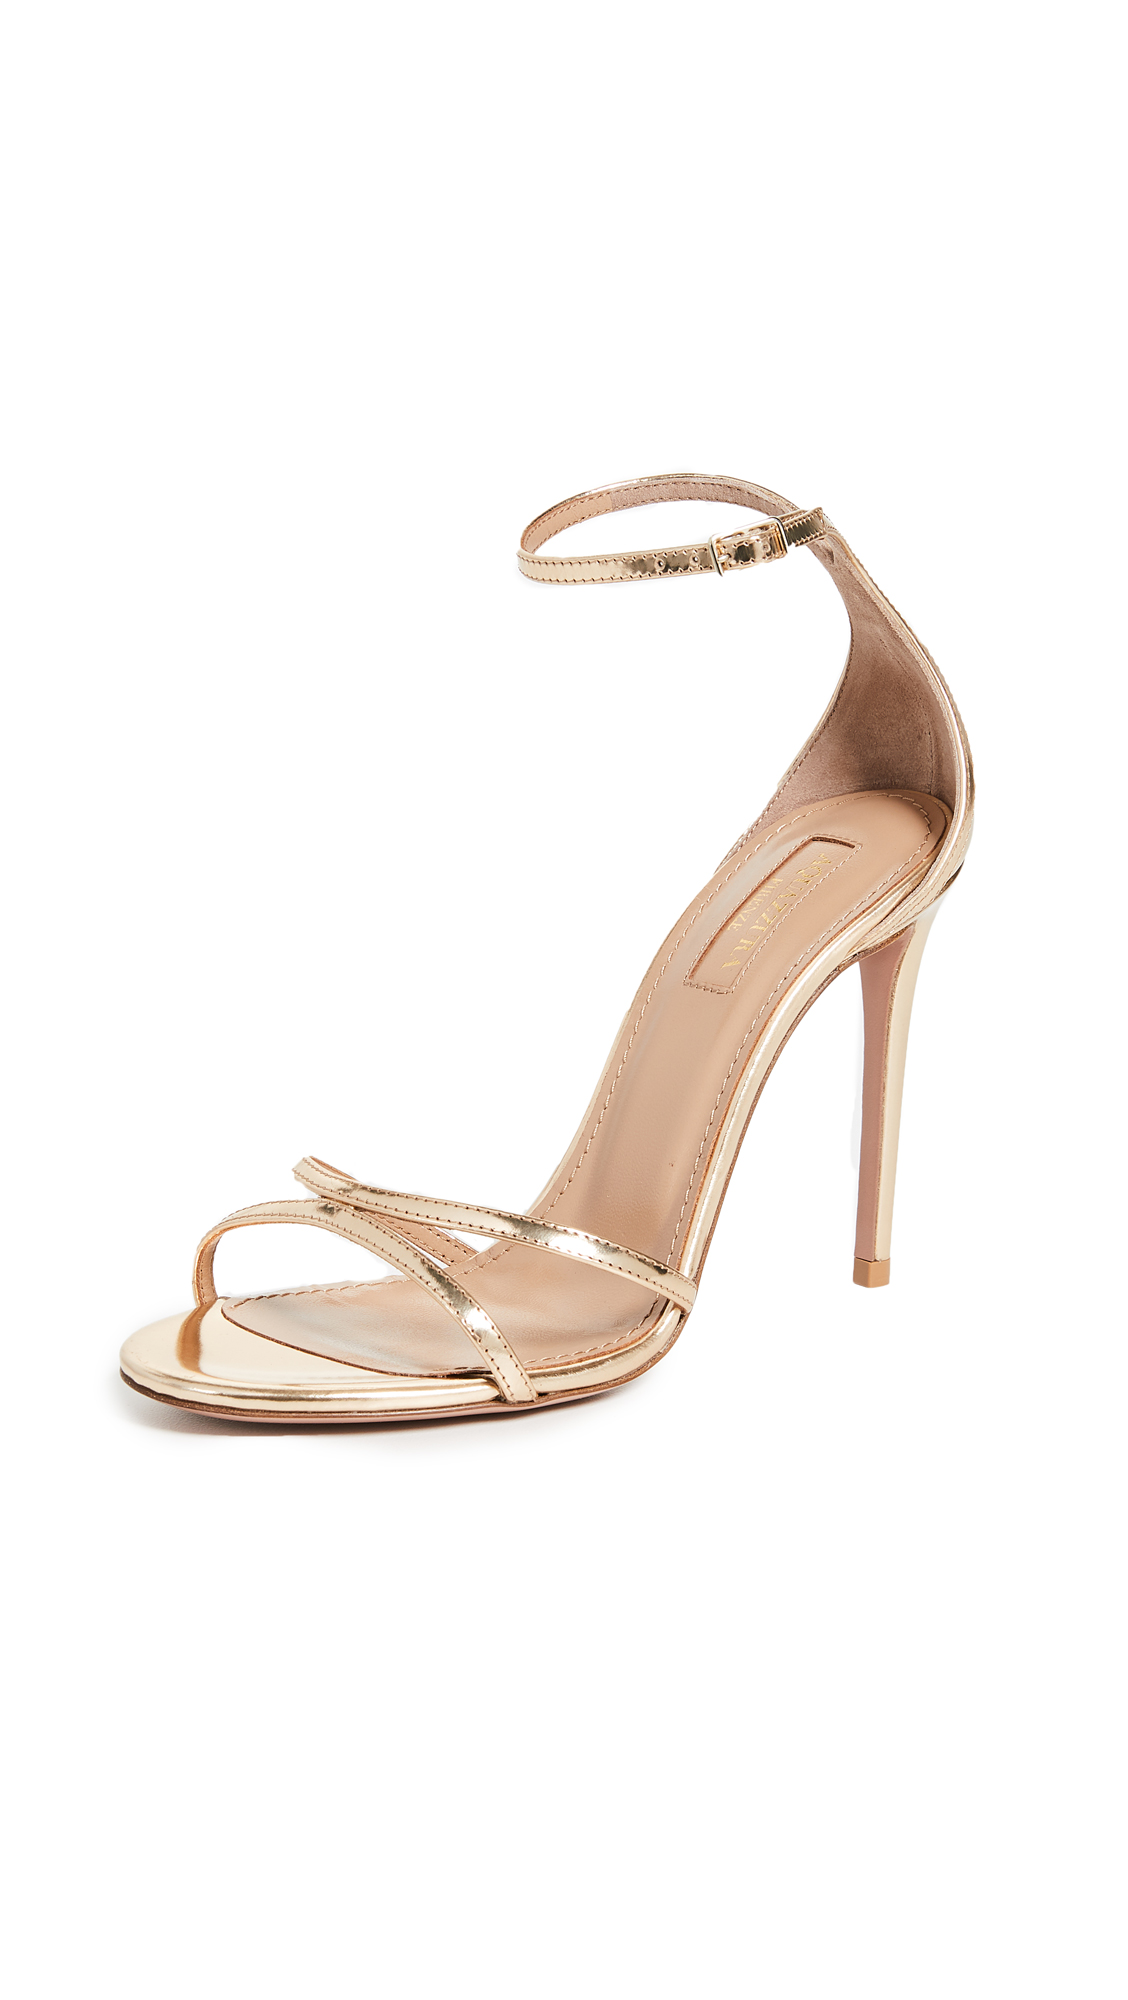 Aquazzura Purist 105mm Sandal - Soft Gold